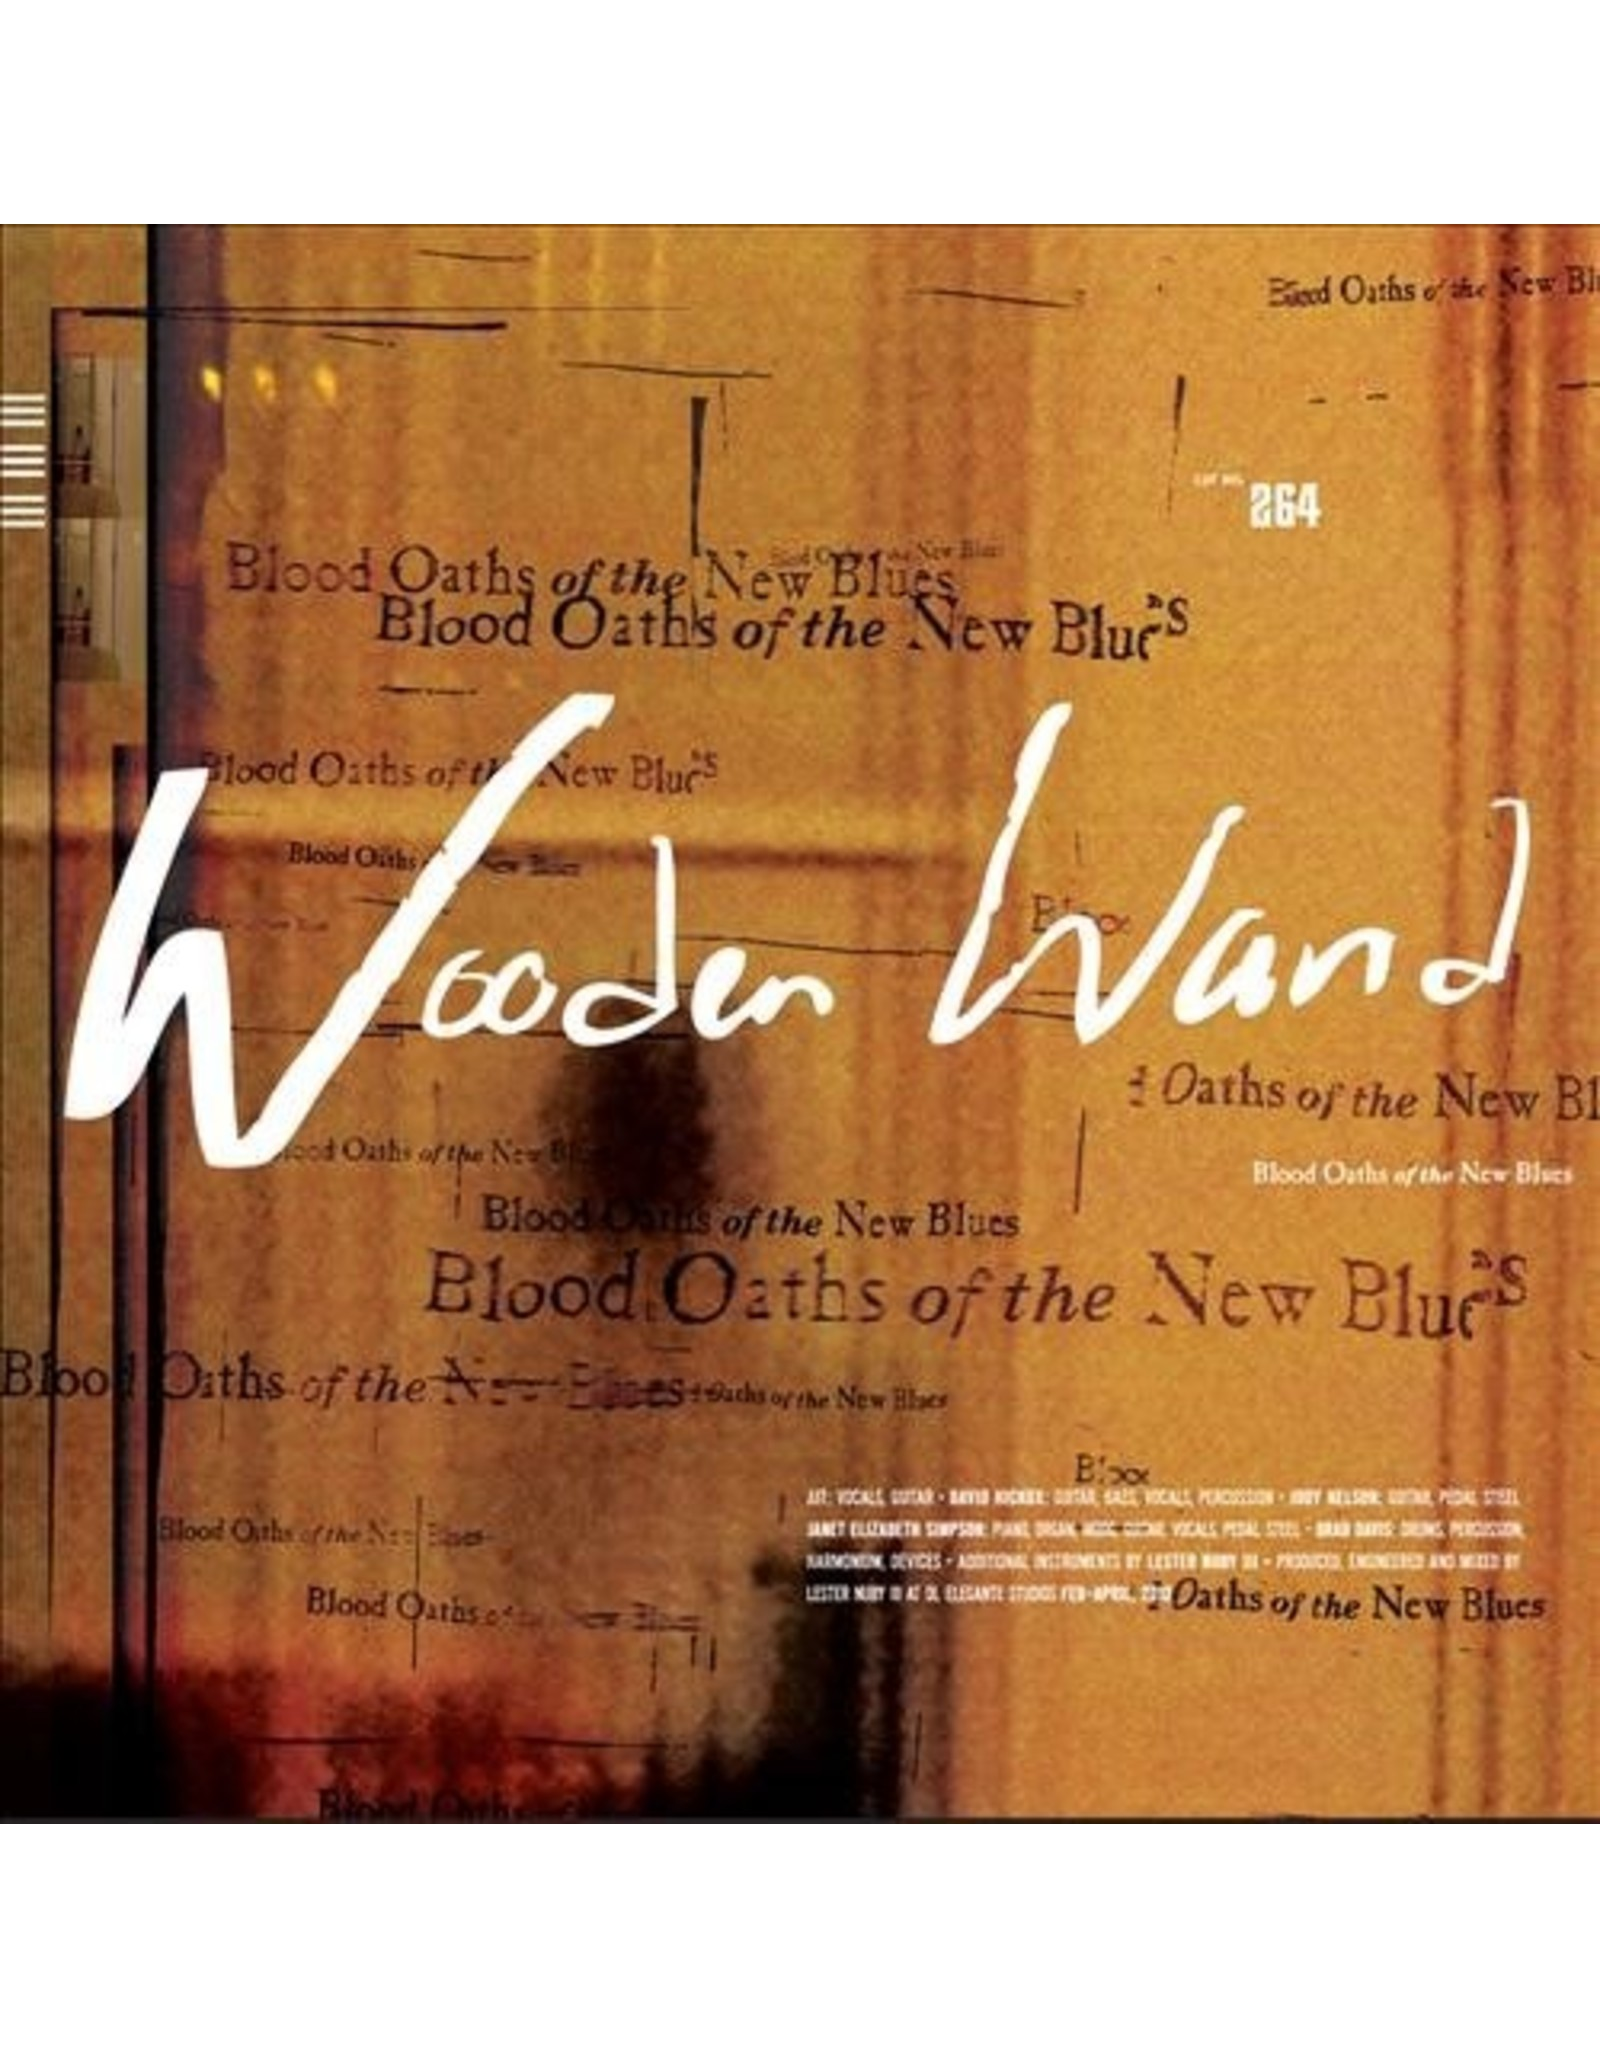 New Vinyl Wooden Wand - Blood Oaths Of The New Blues LP